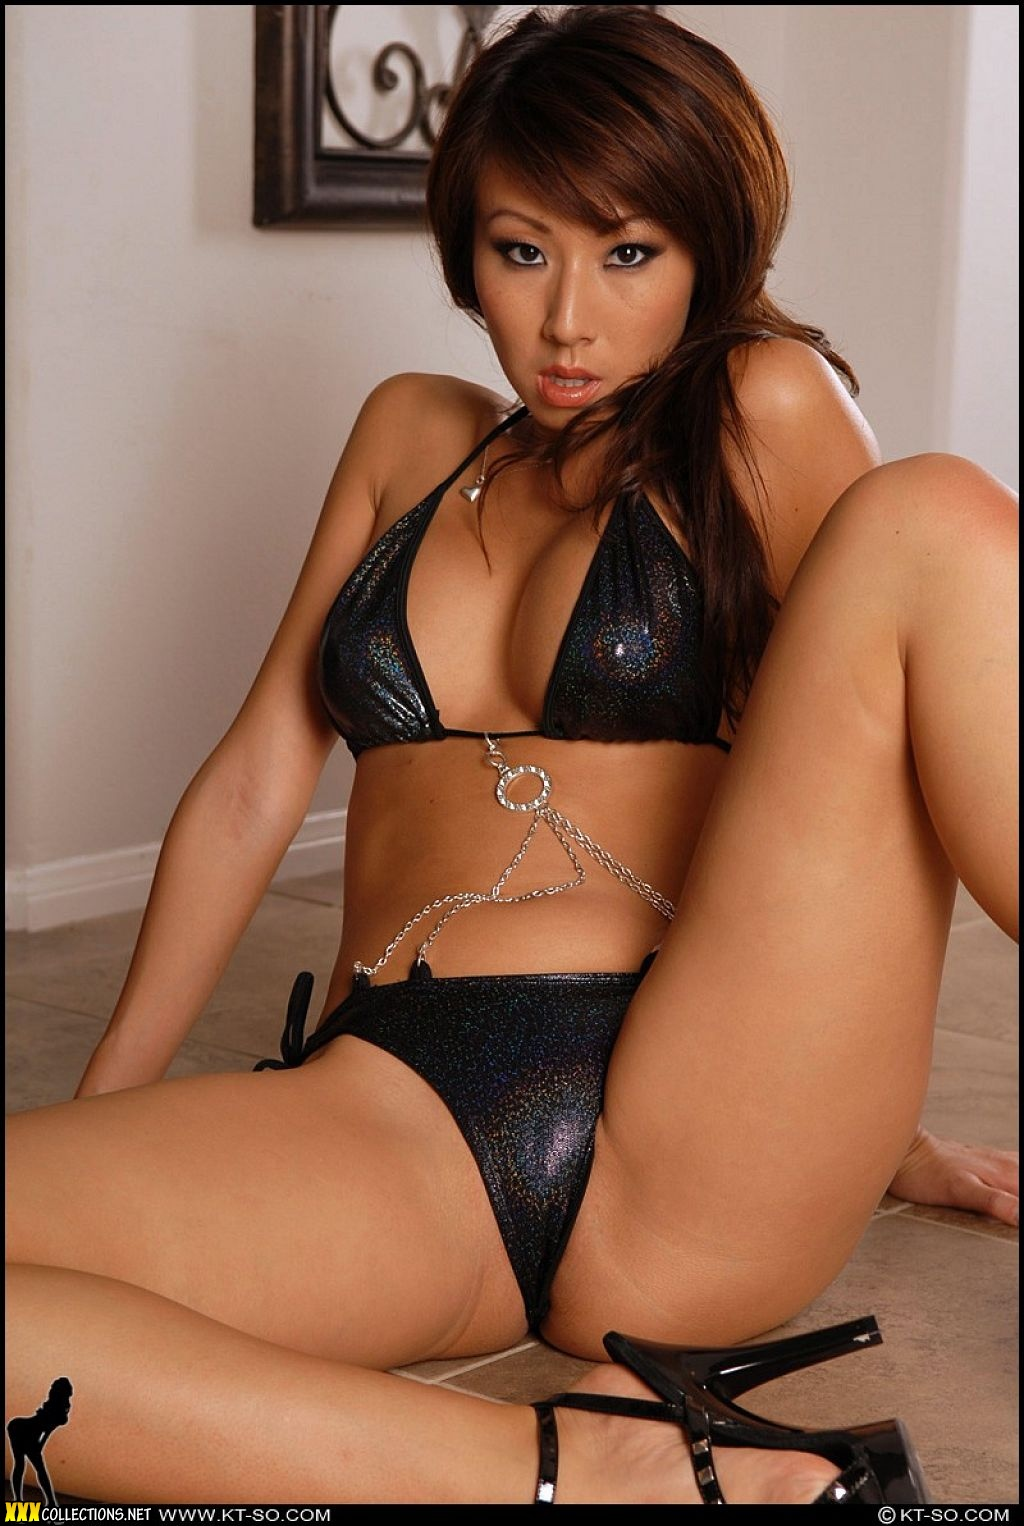 Was Sex bikini double shiney ebony sorry, that